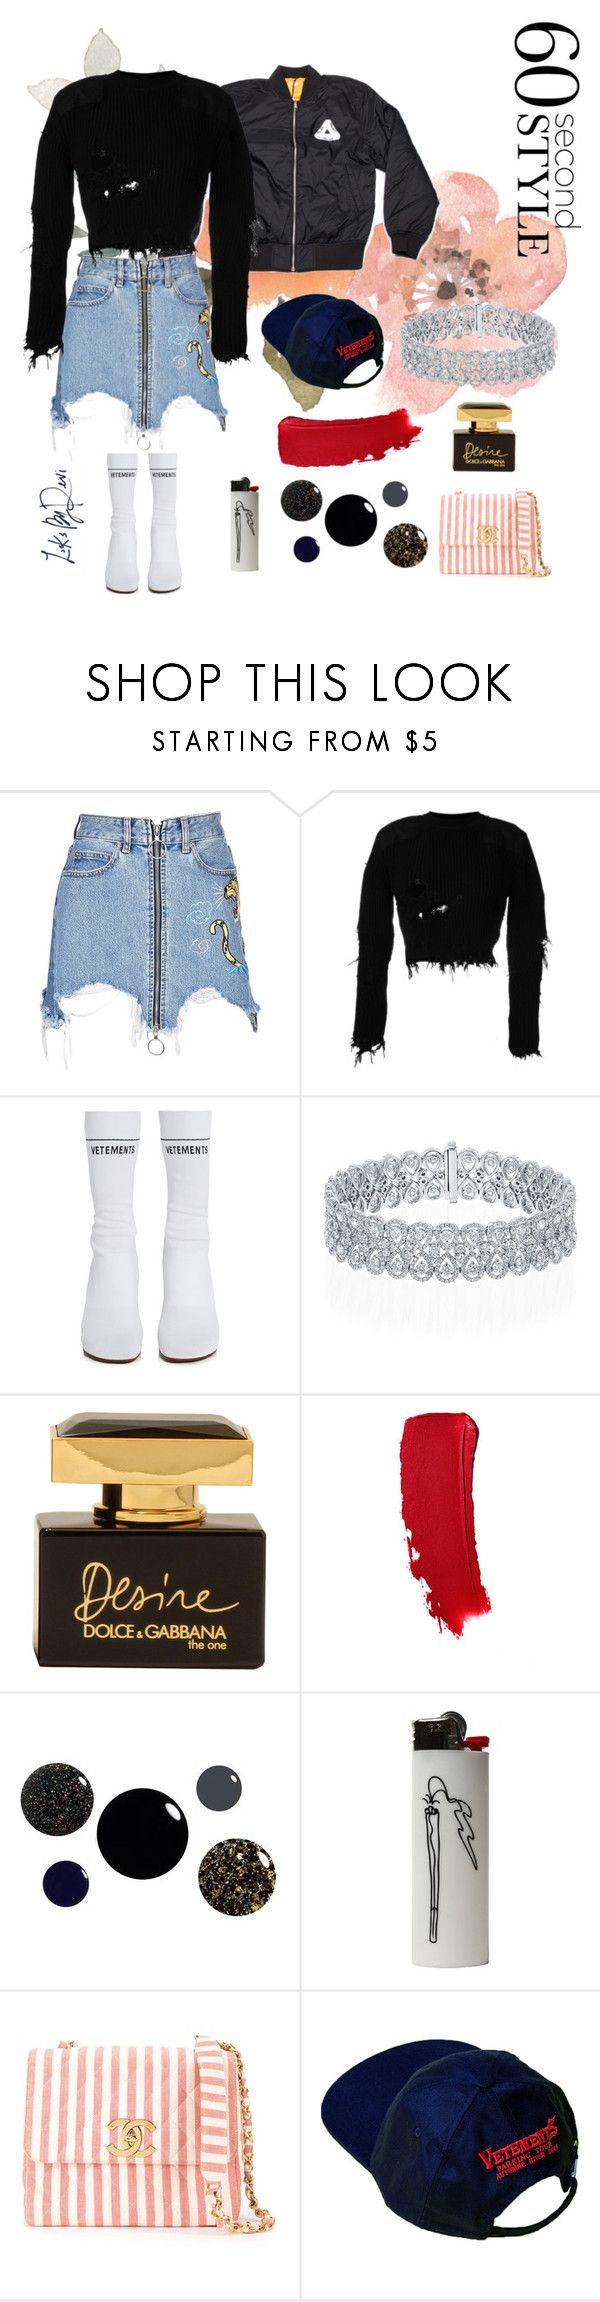 """~12:00 pm~"" by looksbydevi ❤ liked on Polyvore featuring Louis Vuitton, Marcelo Burlon, Yeezy by Kanye West, Vetements, Dolce&Gabbana and Chanel"